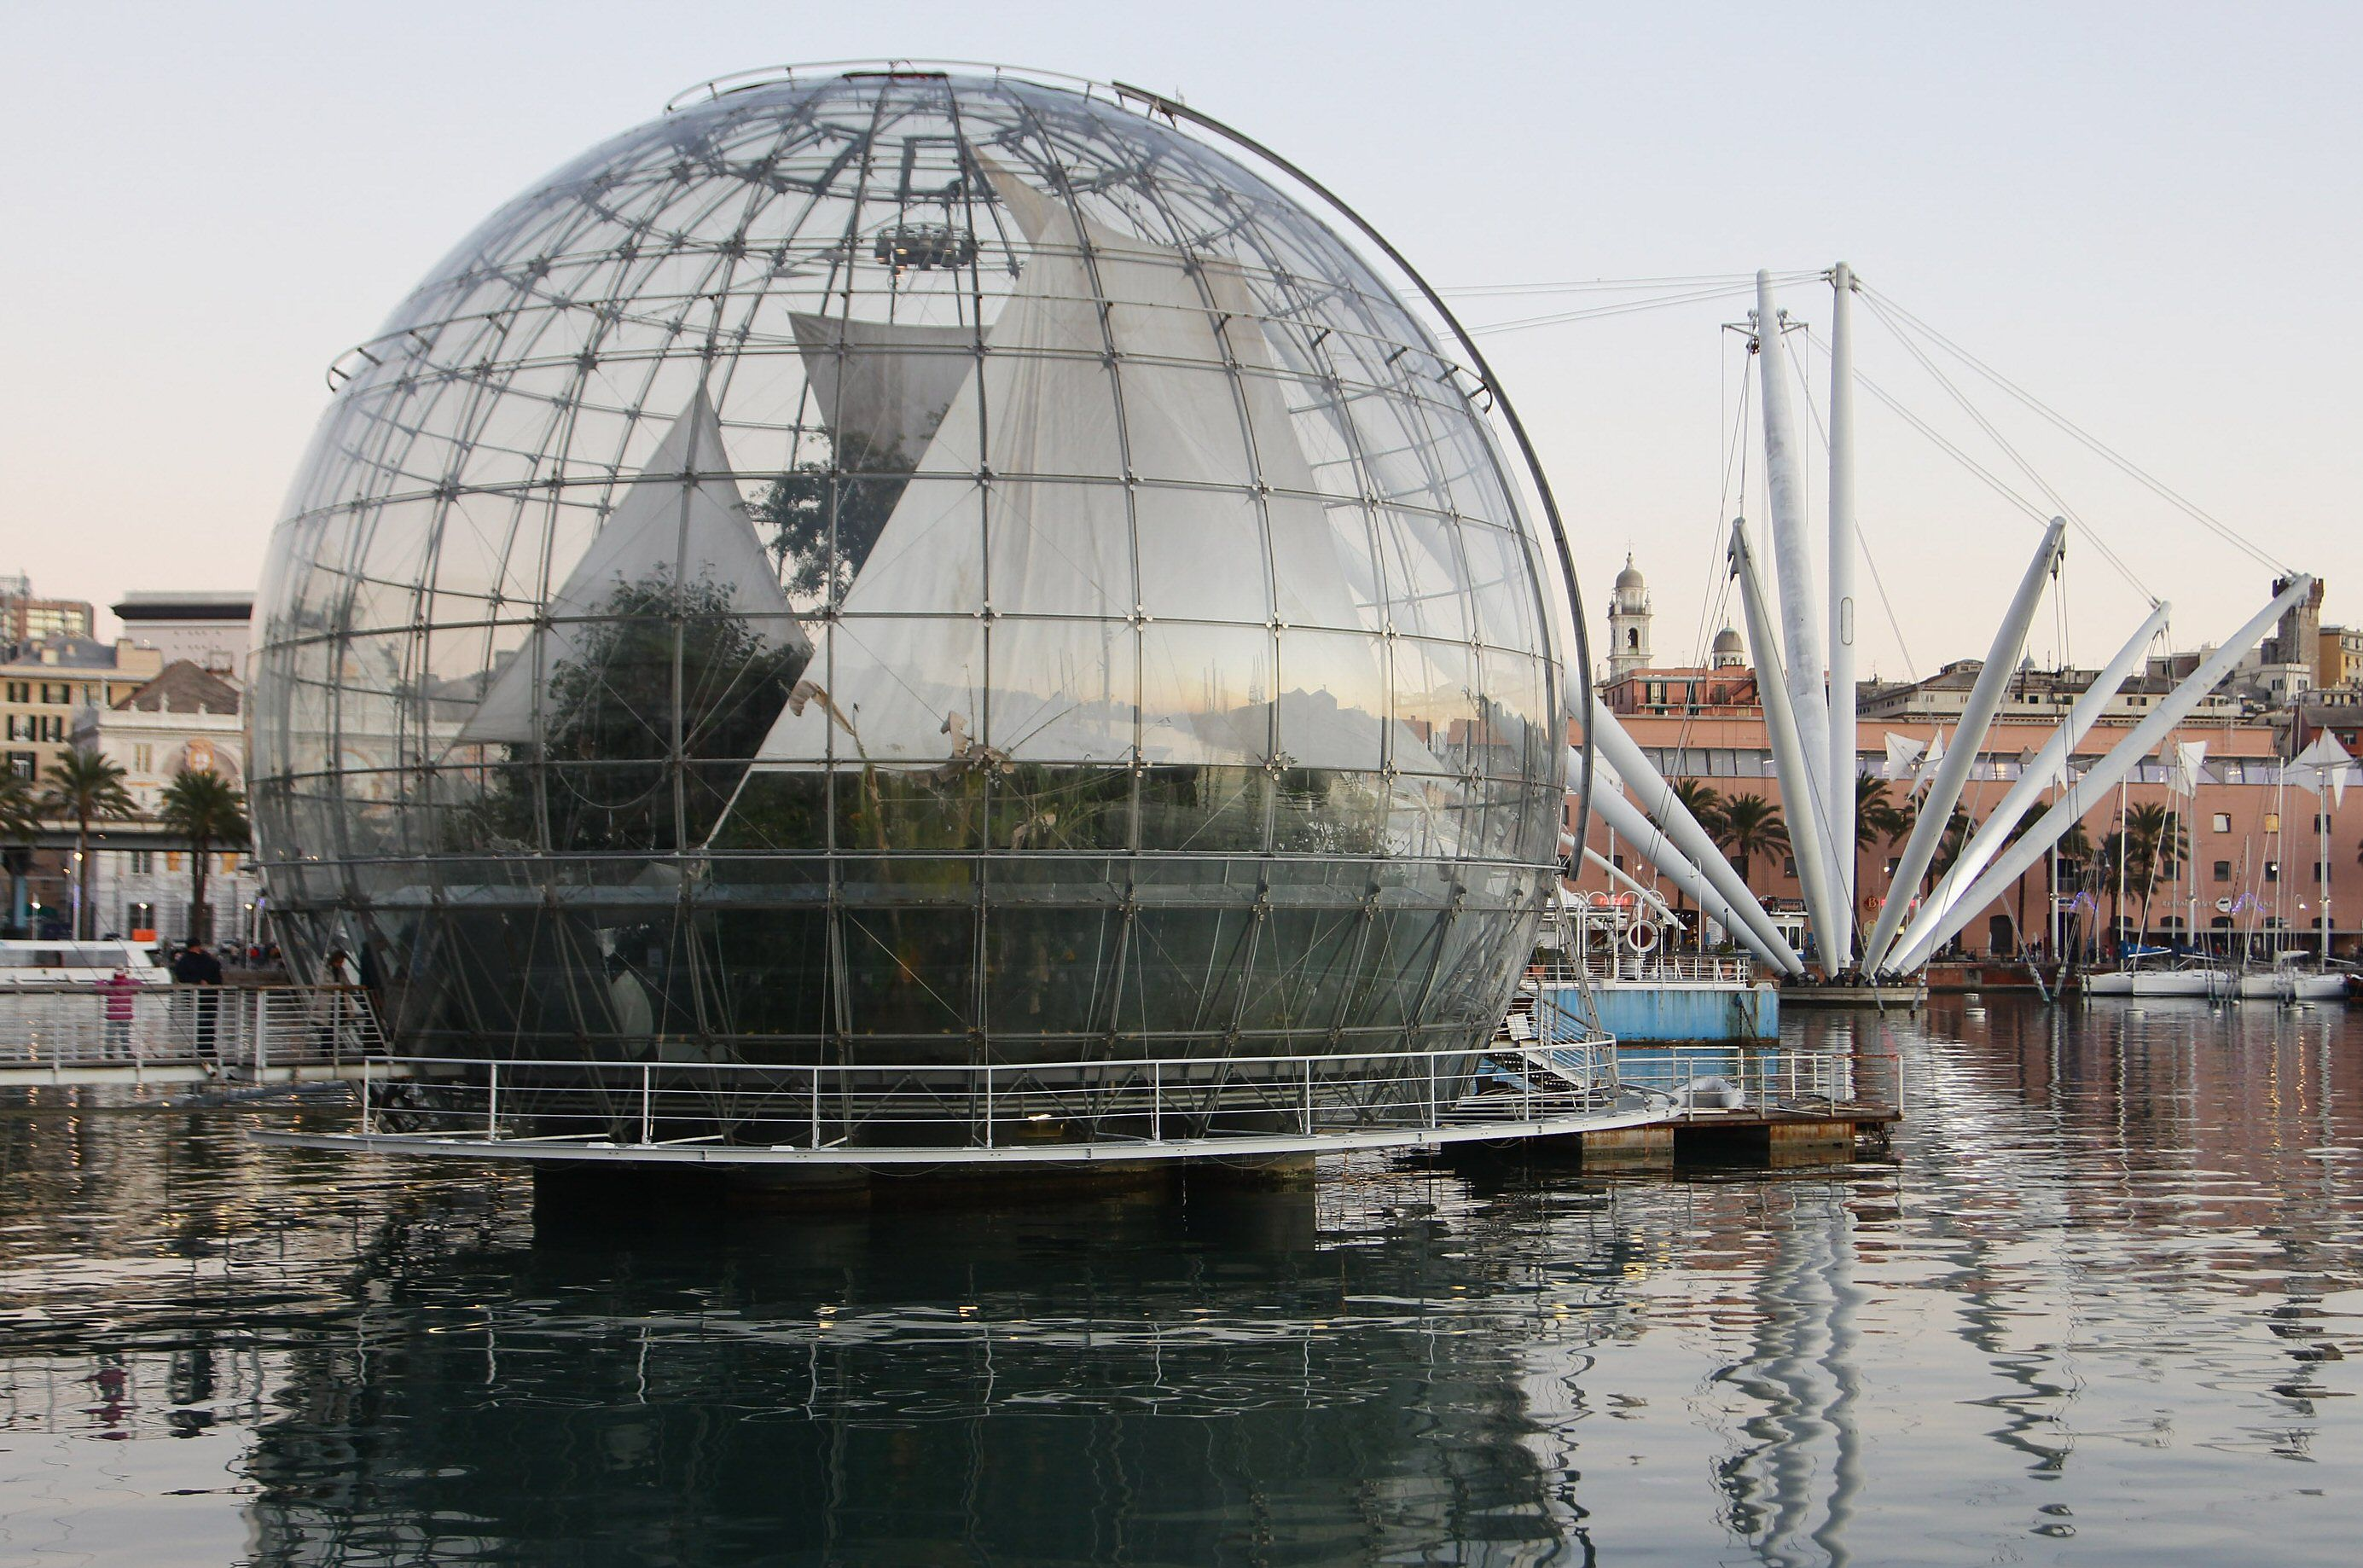 biosphere next to spidery structure of long white poles near water